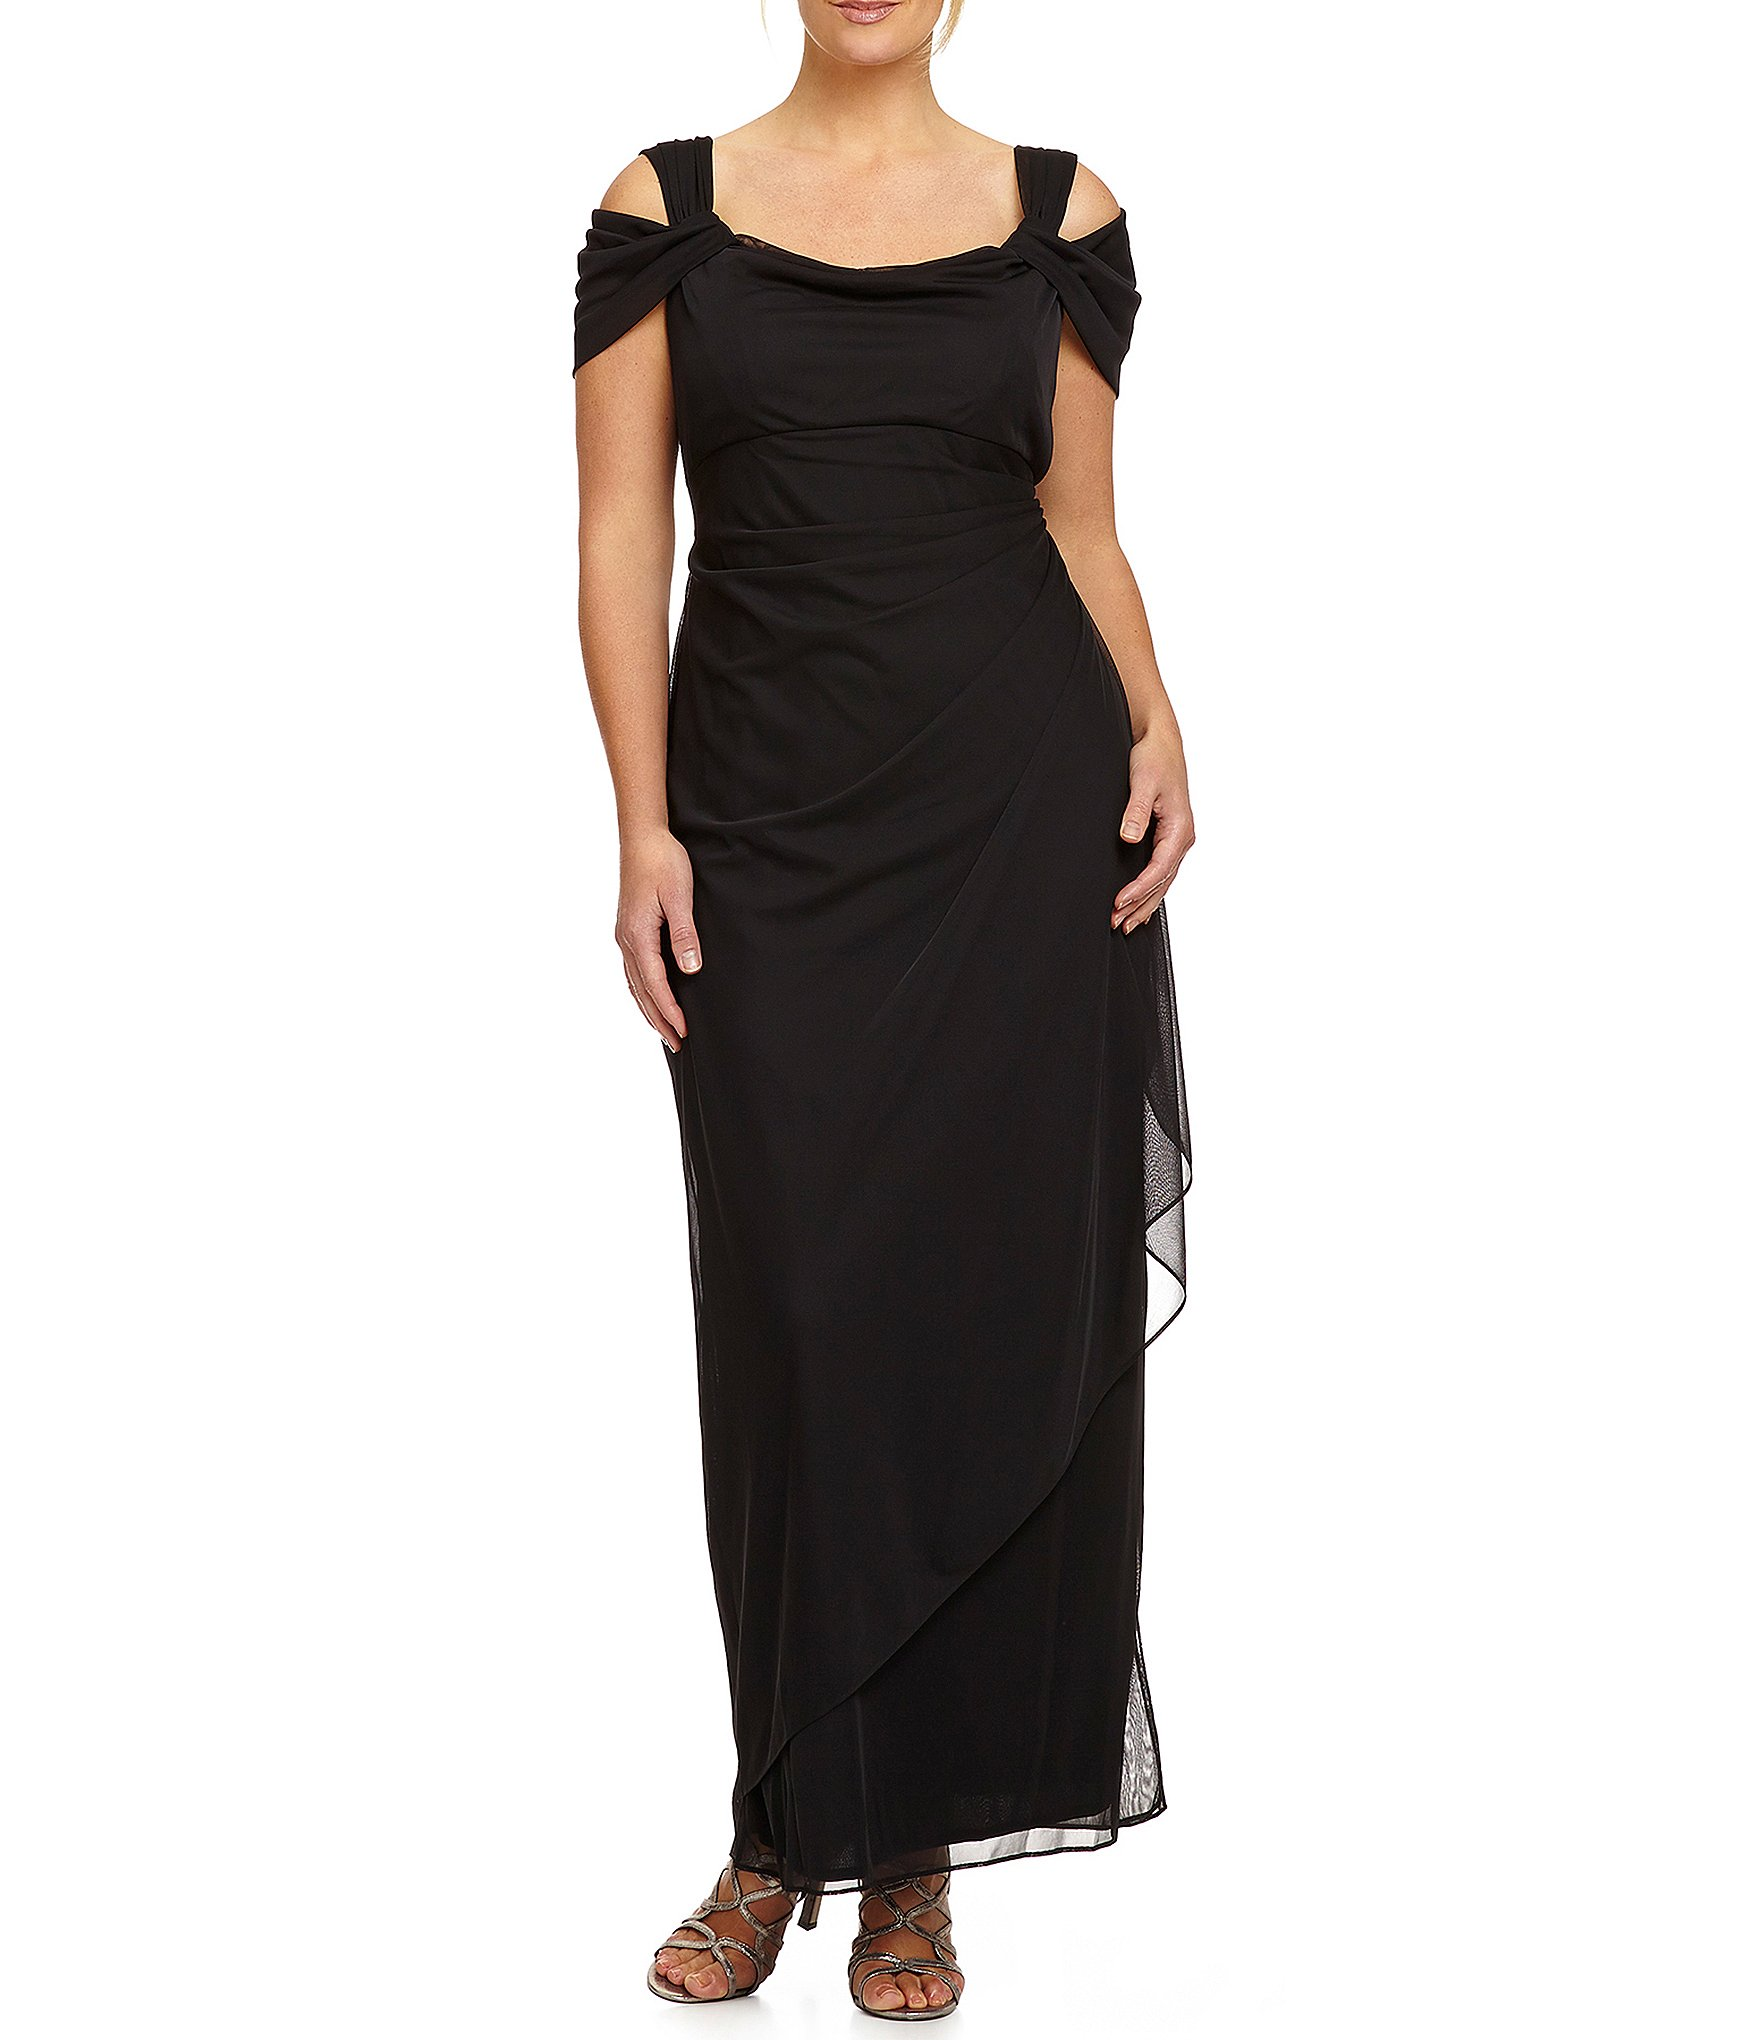 black cocktail dress: Women\'s Clothing & Apparel | Dillards.com